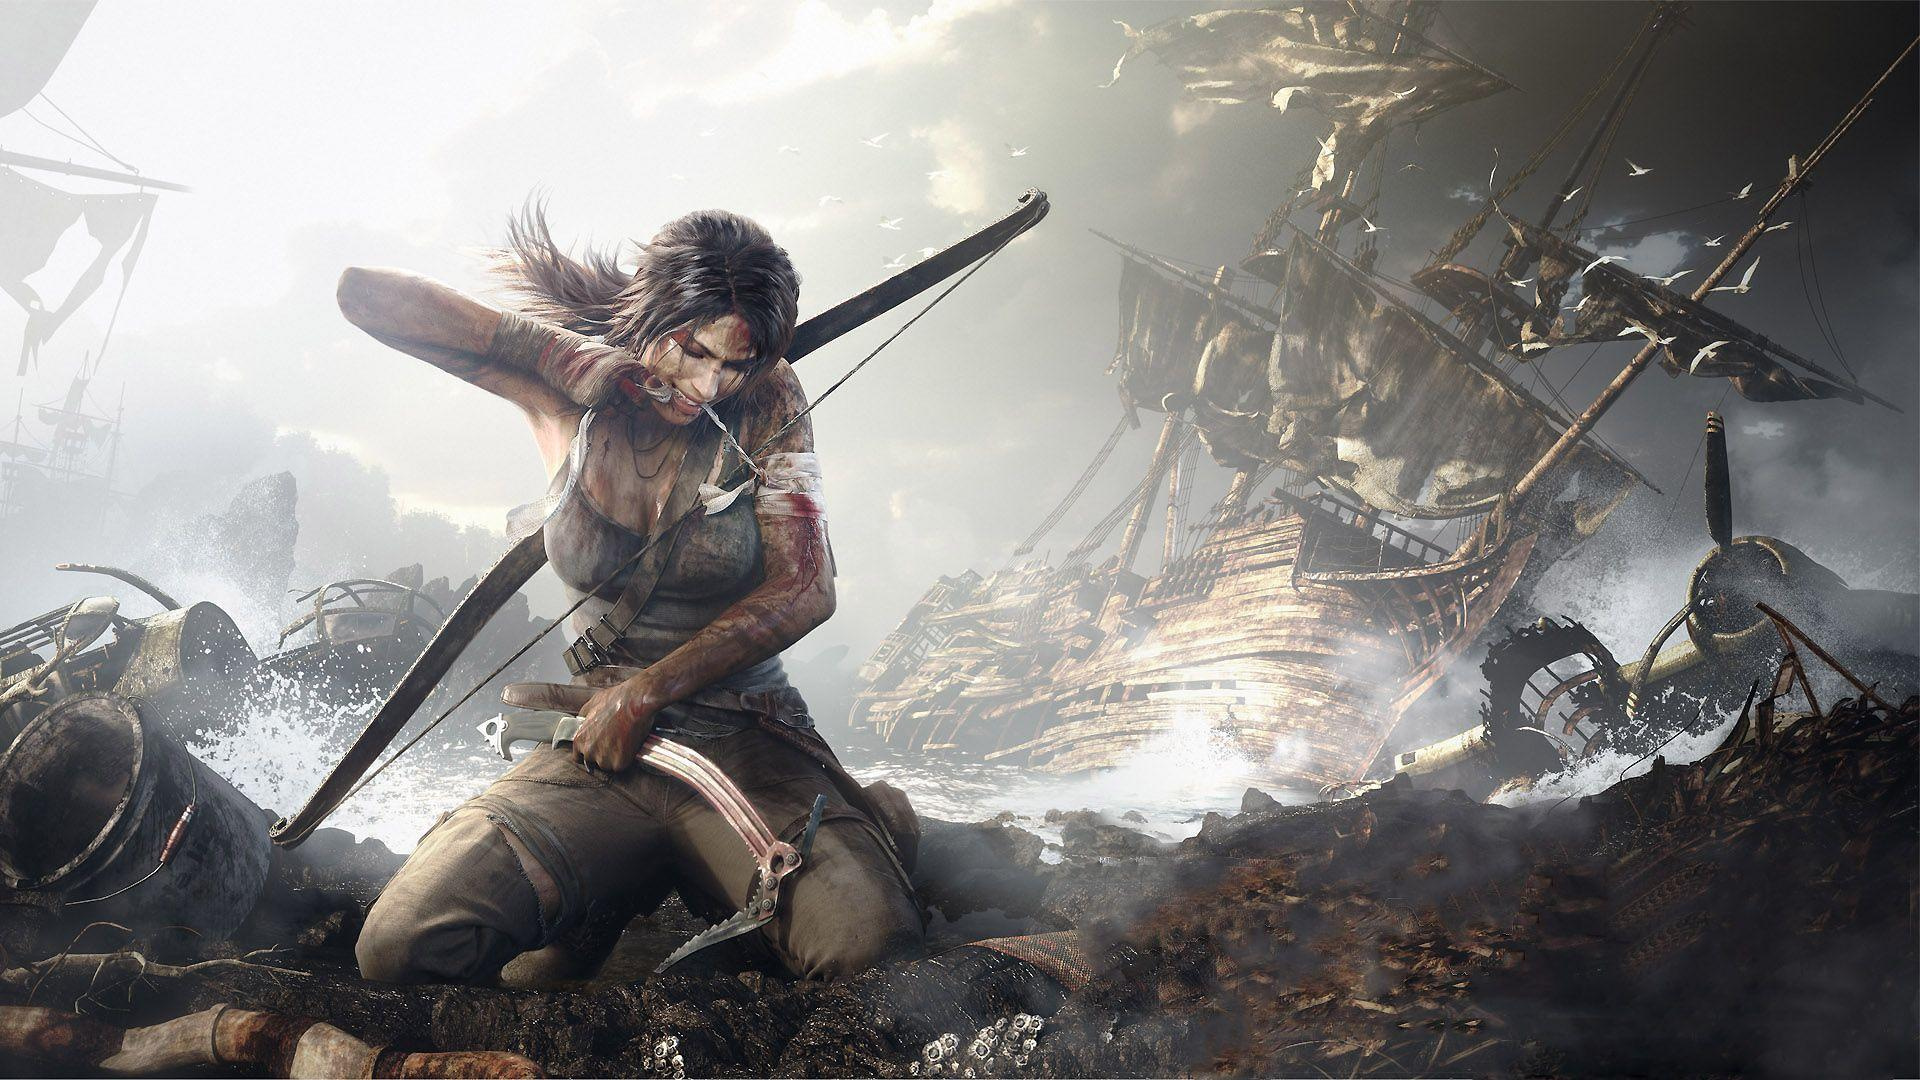 Tomb Raider 2013 Wallpaper: Tomb Raider 2017 Wallpapers HD